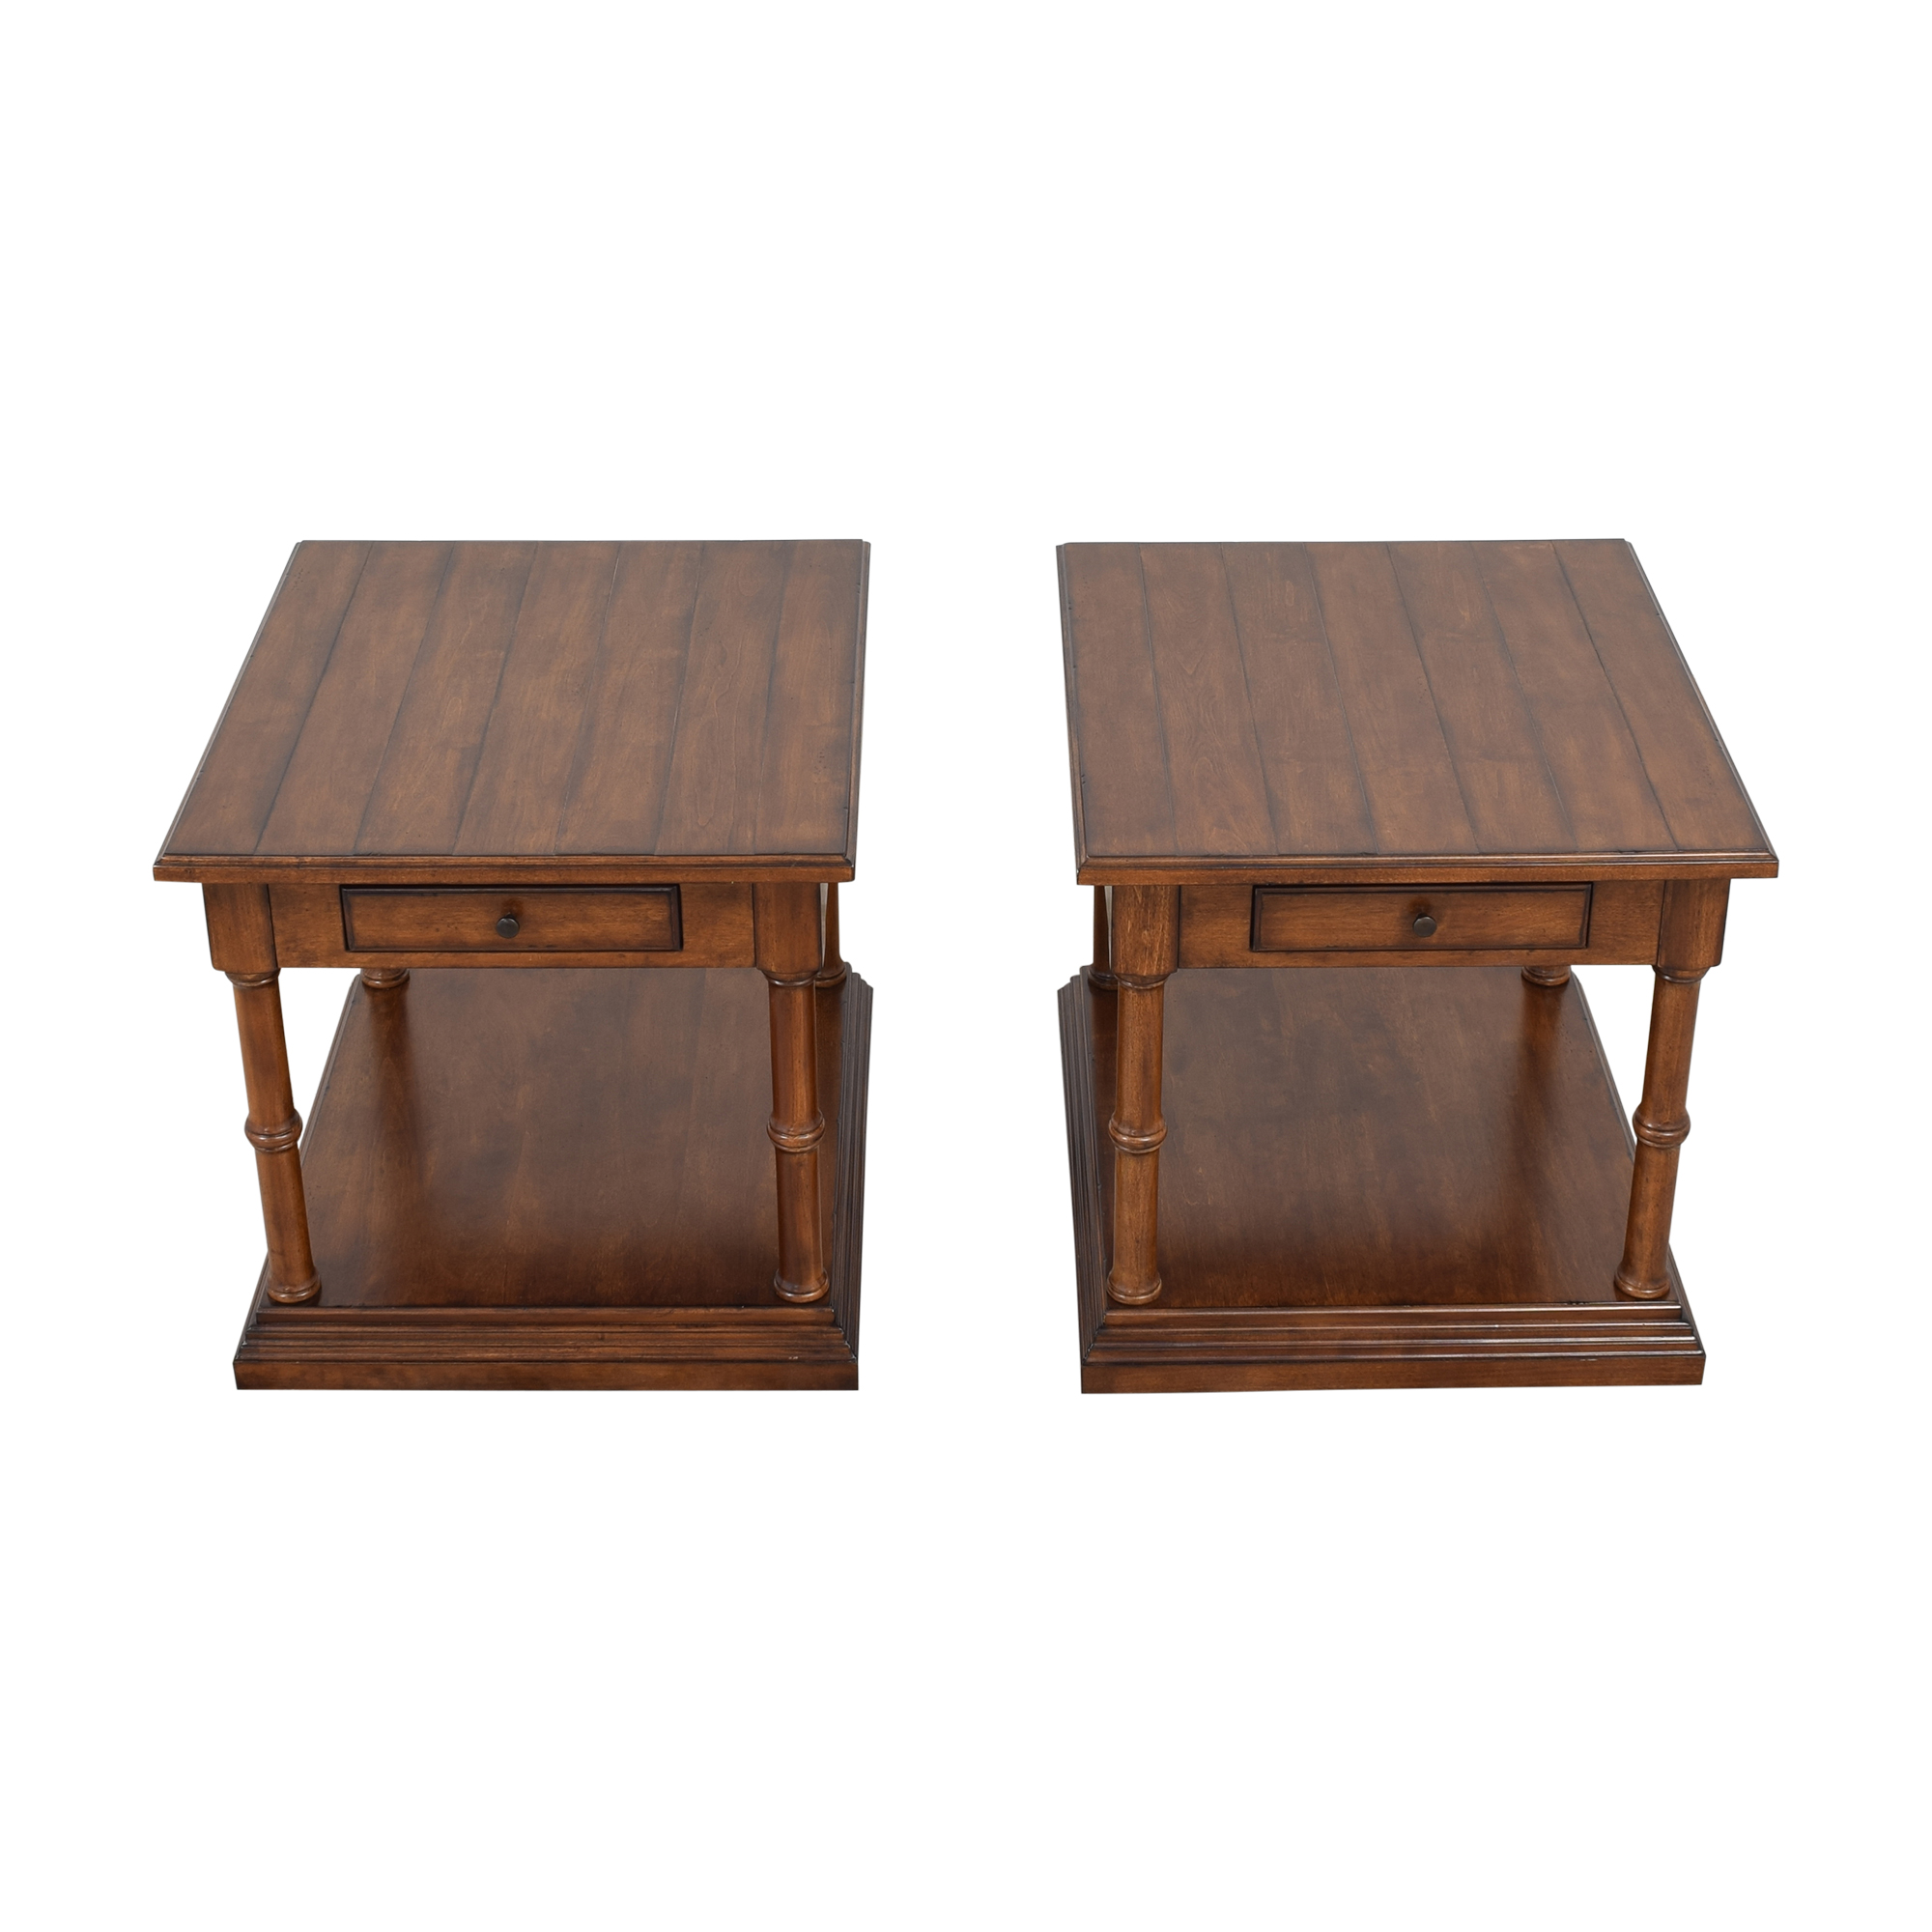 Thomasville Two Tier End Tables Thomasville